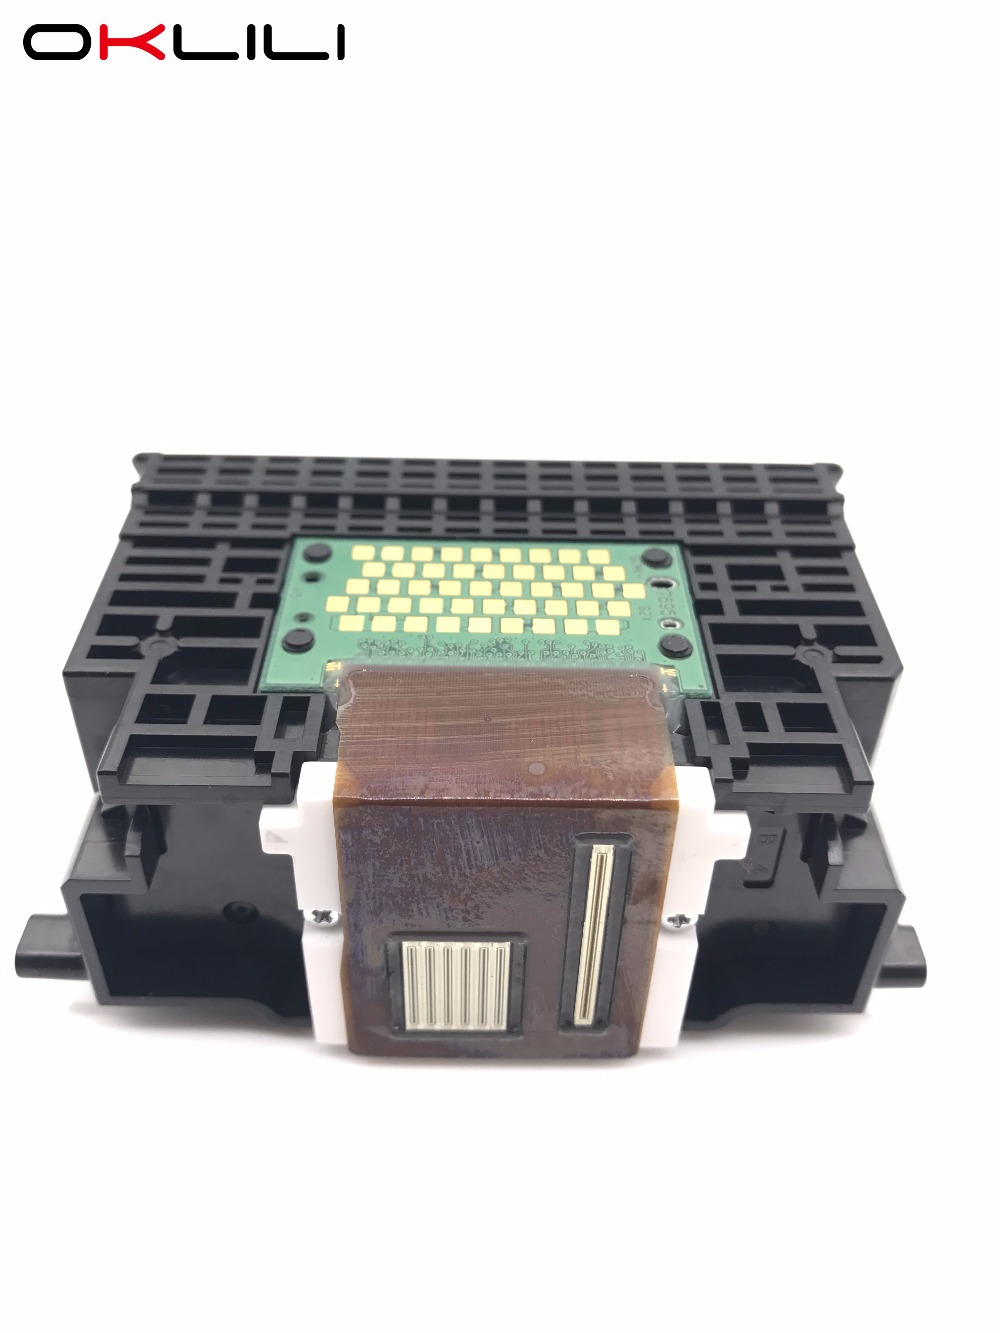 OKLILI ORIGINAL QY6-0075 QY6-0075-000 Printhead Print Head Printer Head for Canon iP5300 MP810 iP4500 MP610 MX850 genuine brand new qy6 0077 printhead print head for canon pro 9500 mark ii printer